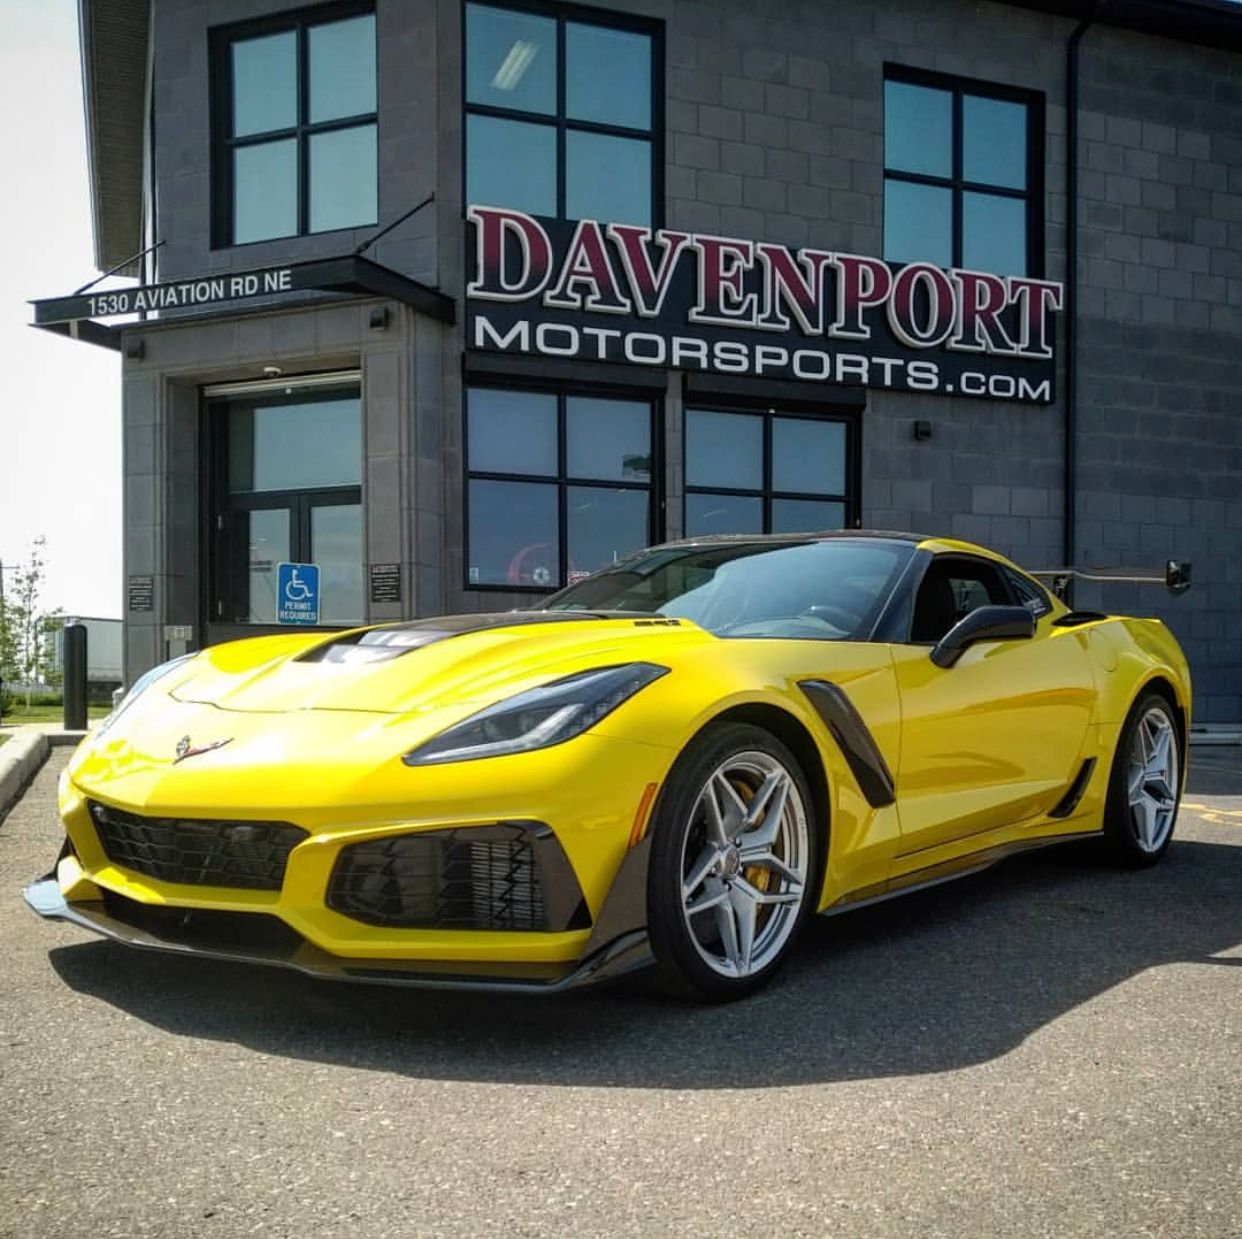 Chevrolet Corvette C7 Zr1 Painted In Racing Yellow Tintcoat Photo